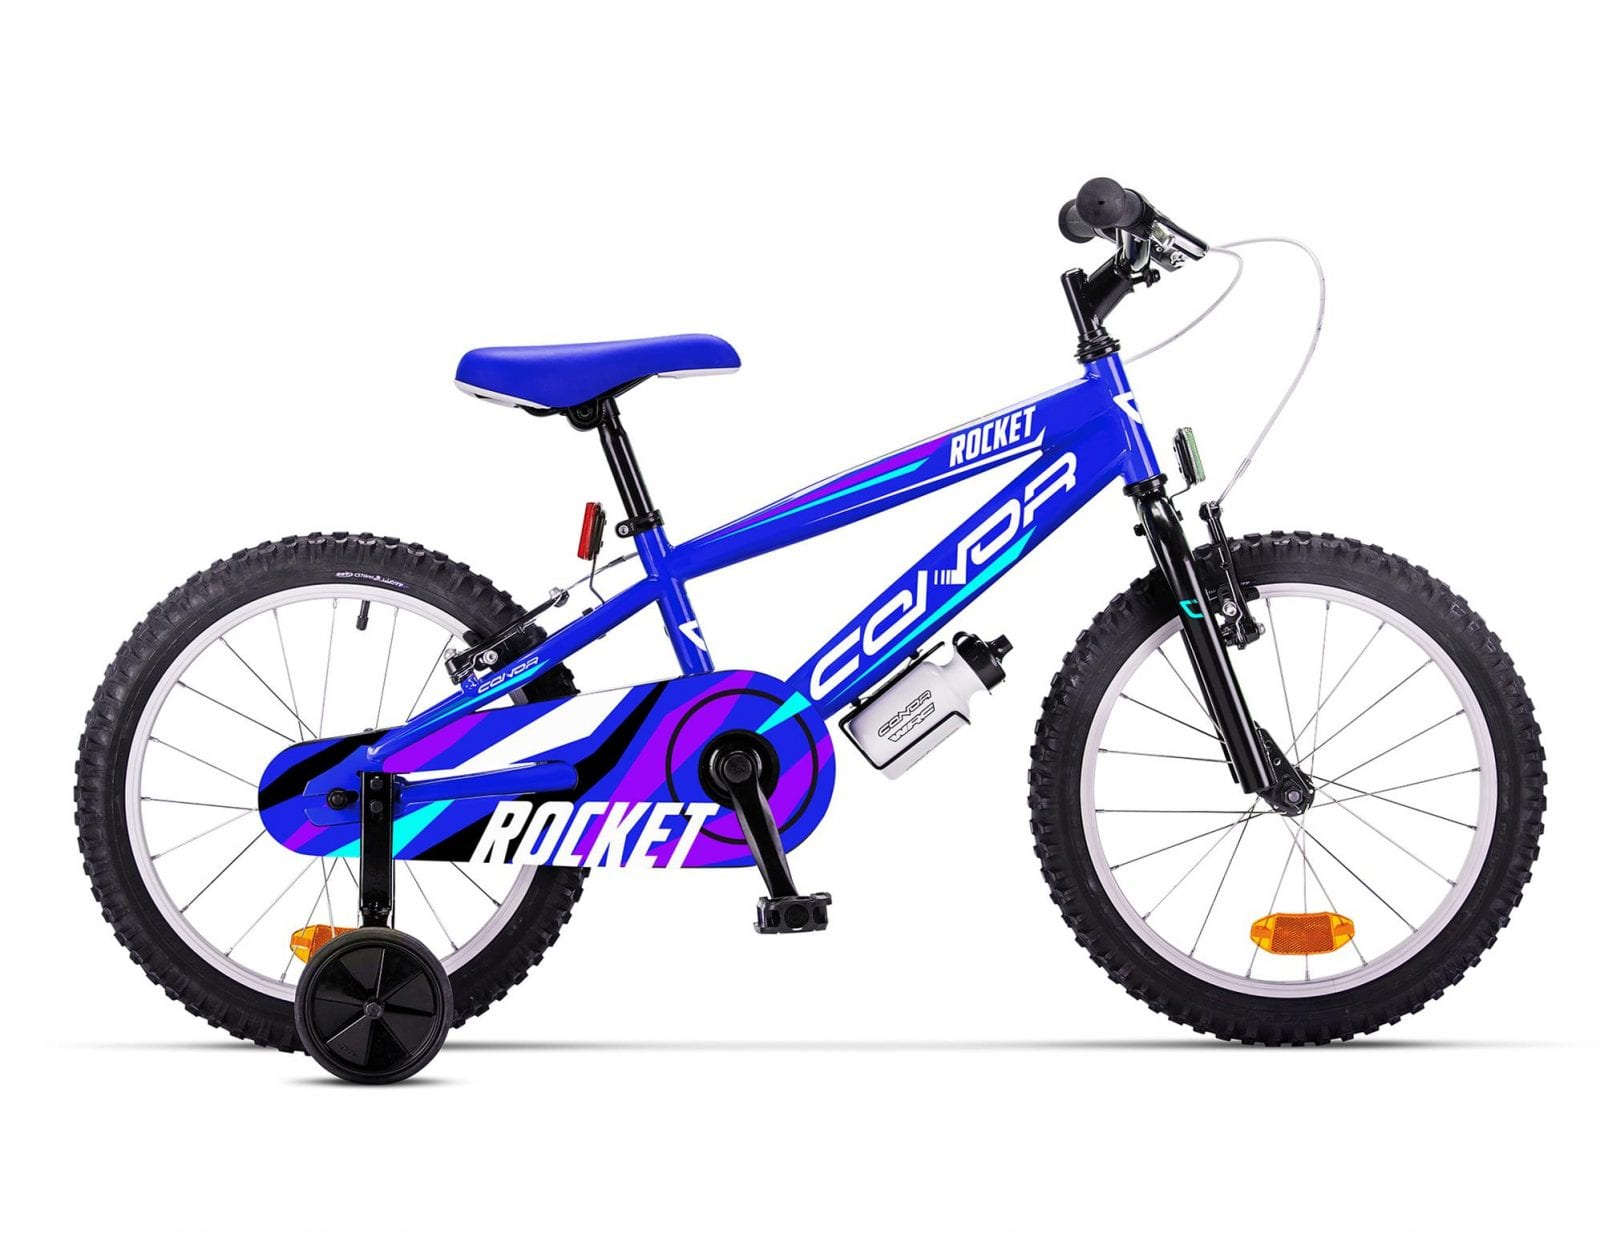 Conor-Rocket-18-Azul-Vuk-Bikes-Madrid